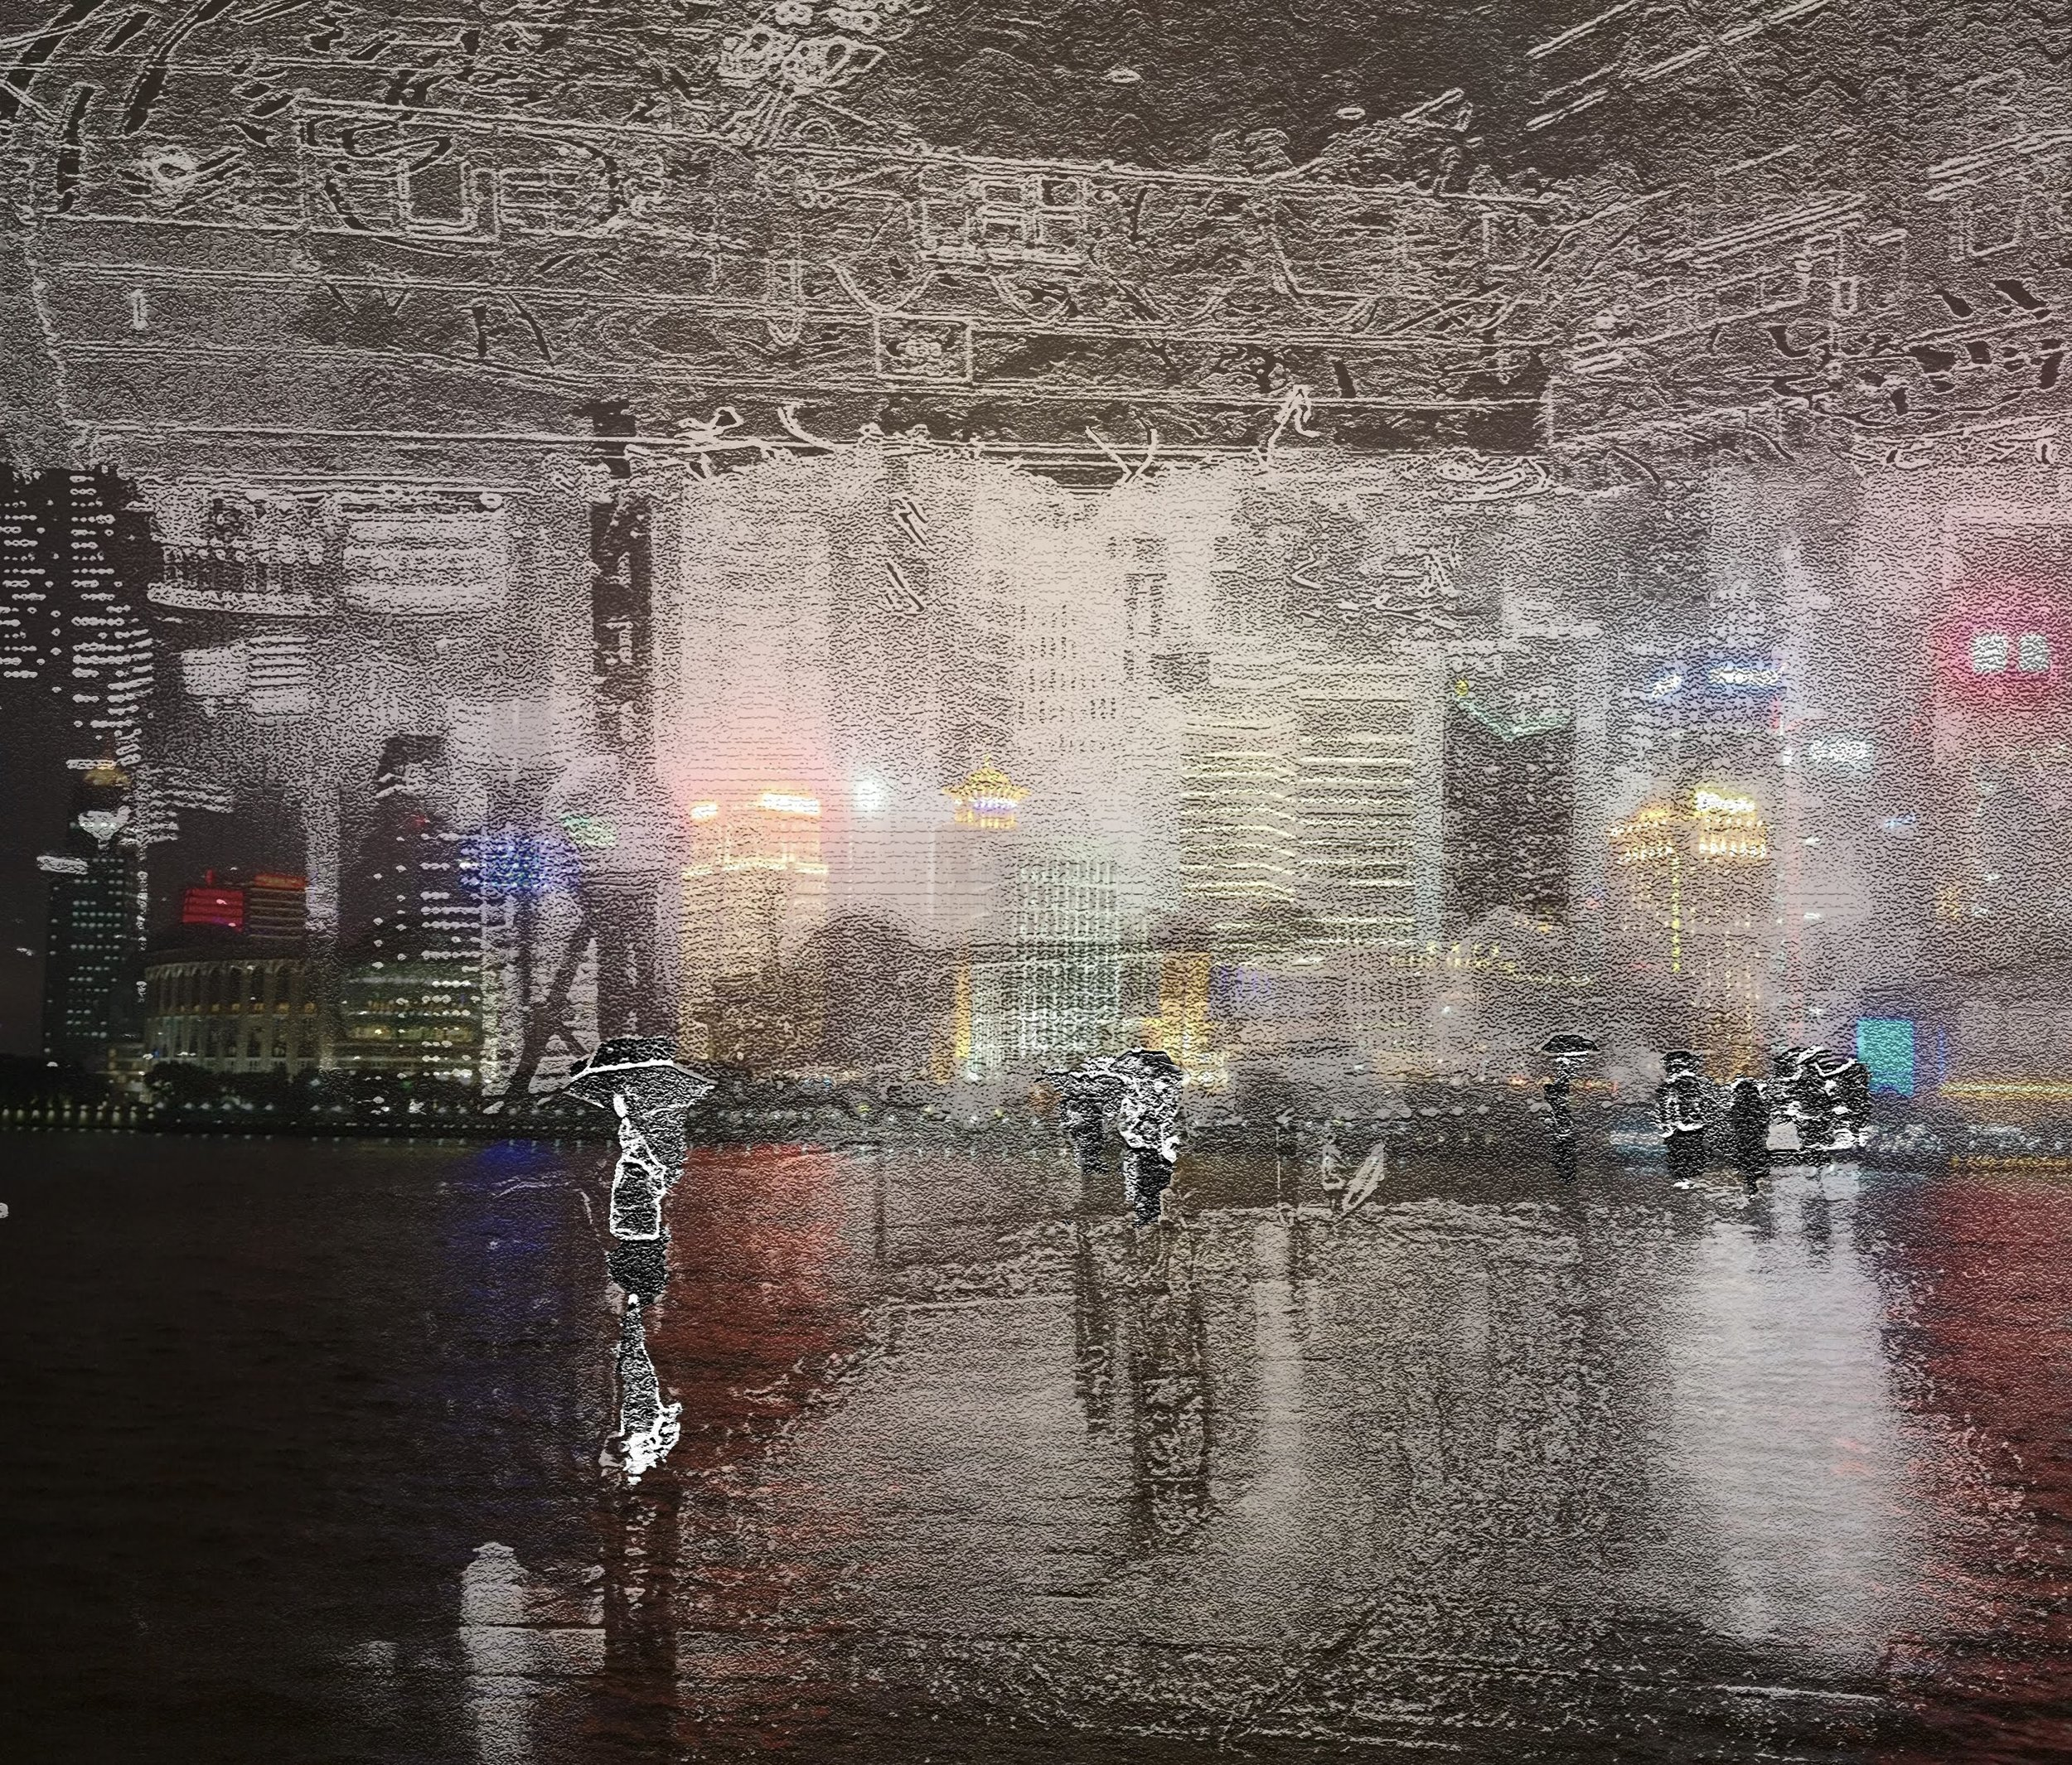 rainy city night.jpg